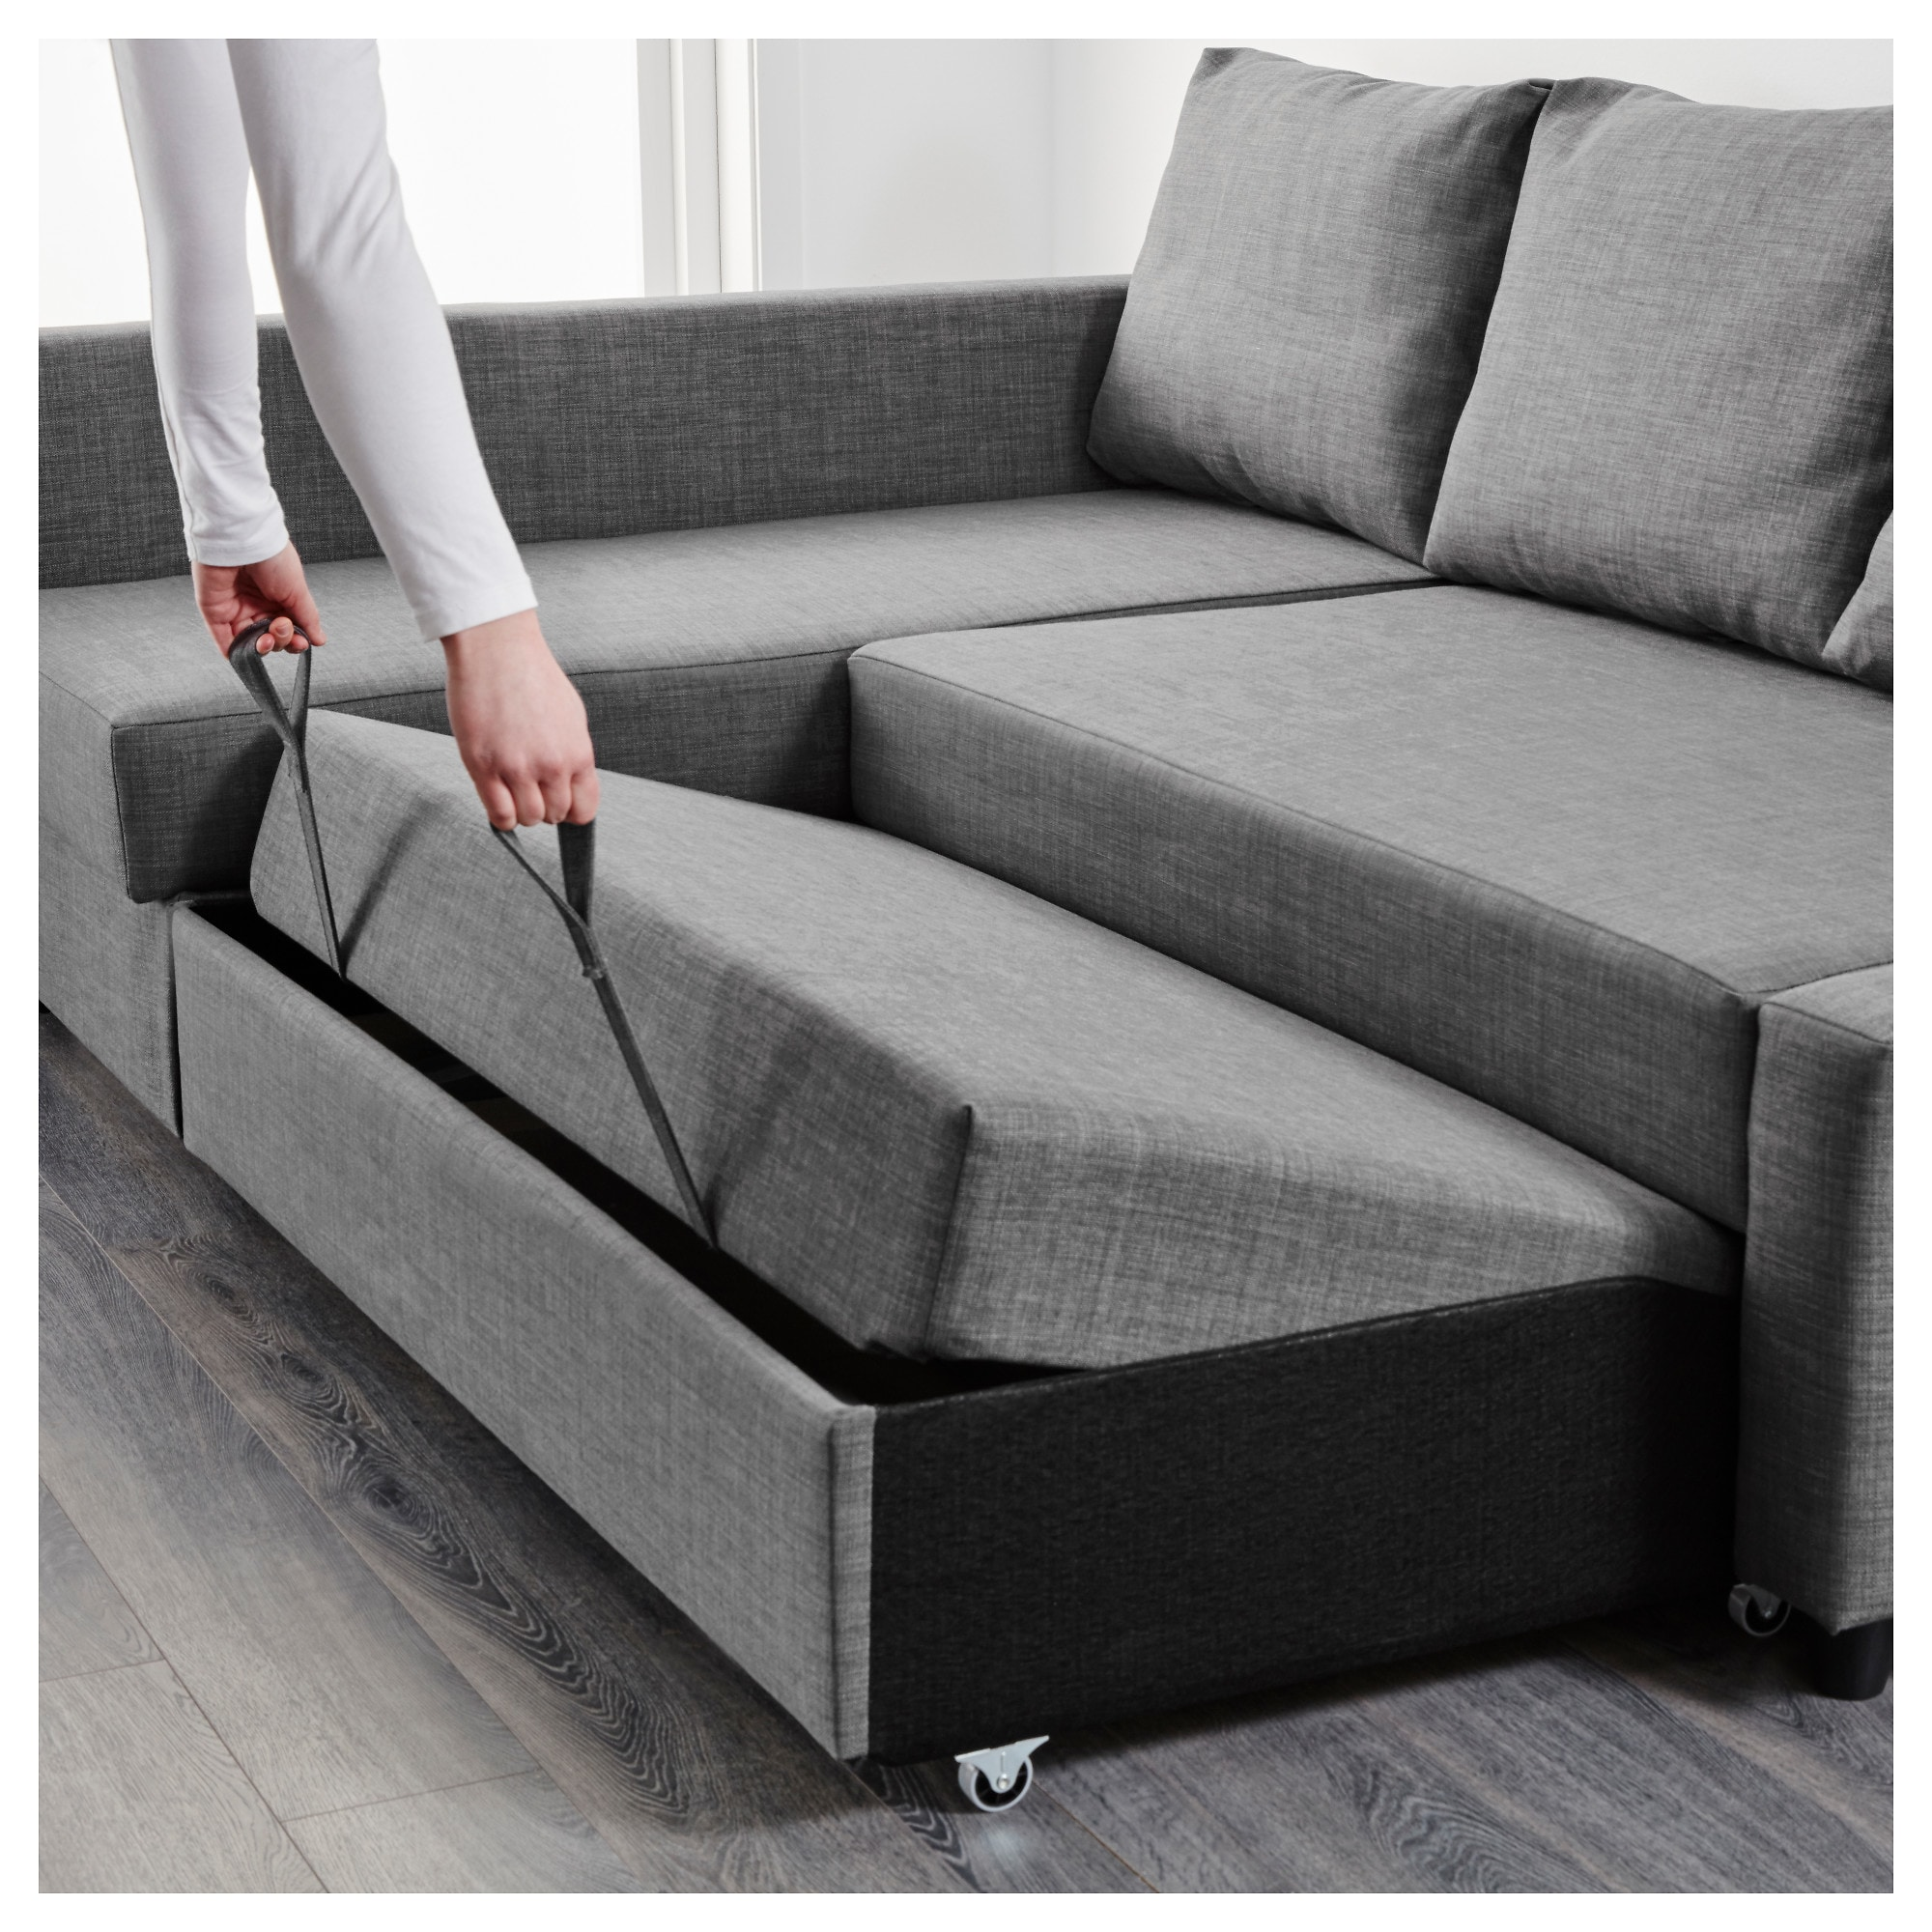 Friheten Sofa Nz 10 Ikea Steals That Will Make Your Home Look Like An Airbnb Rental